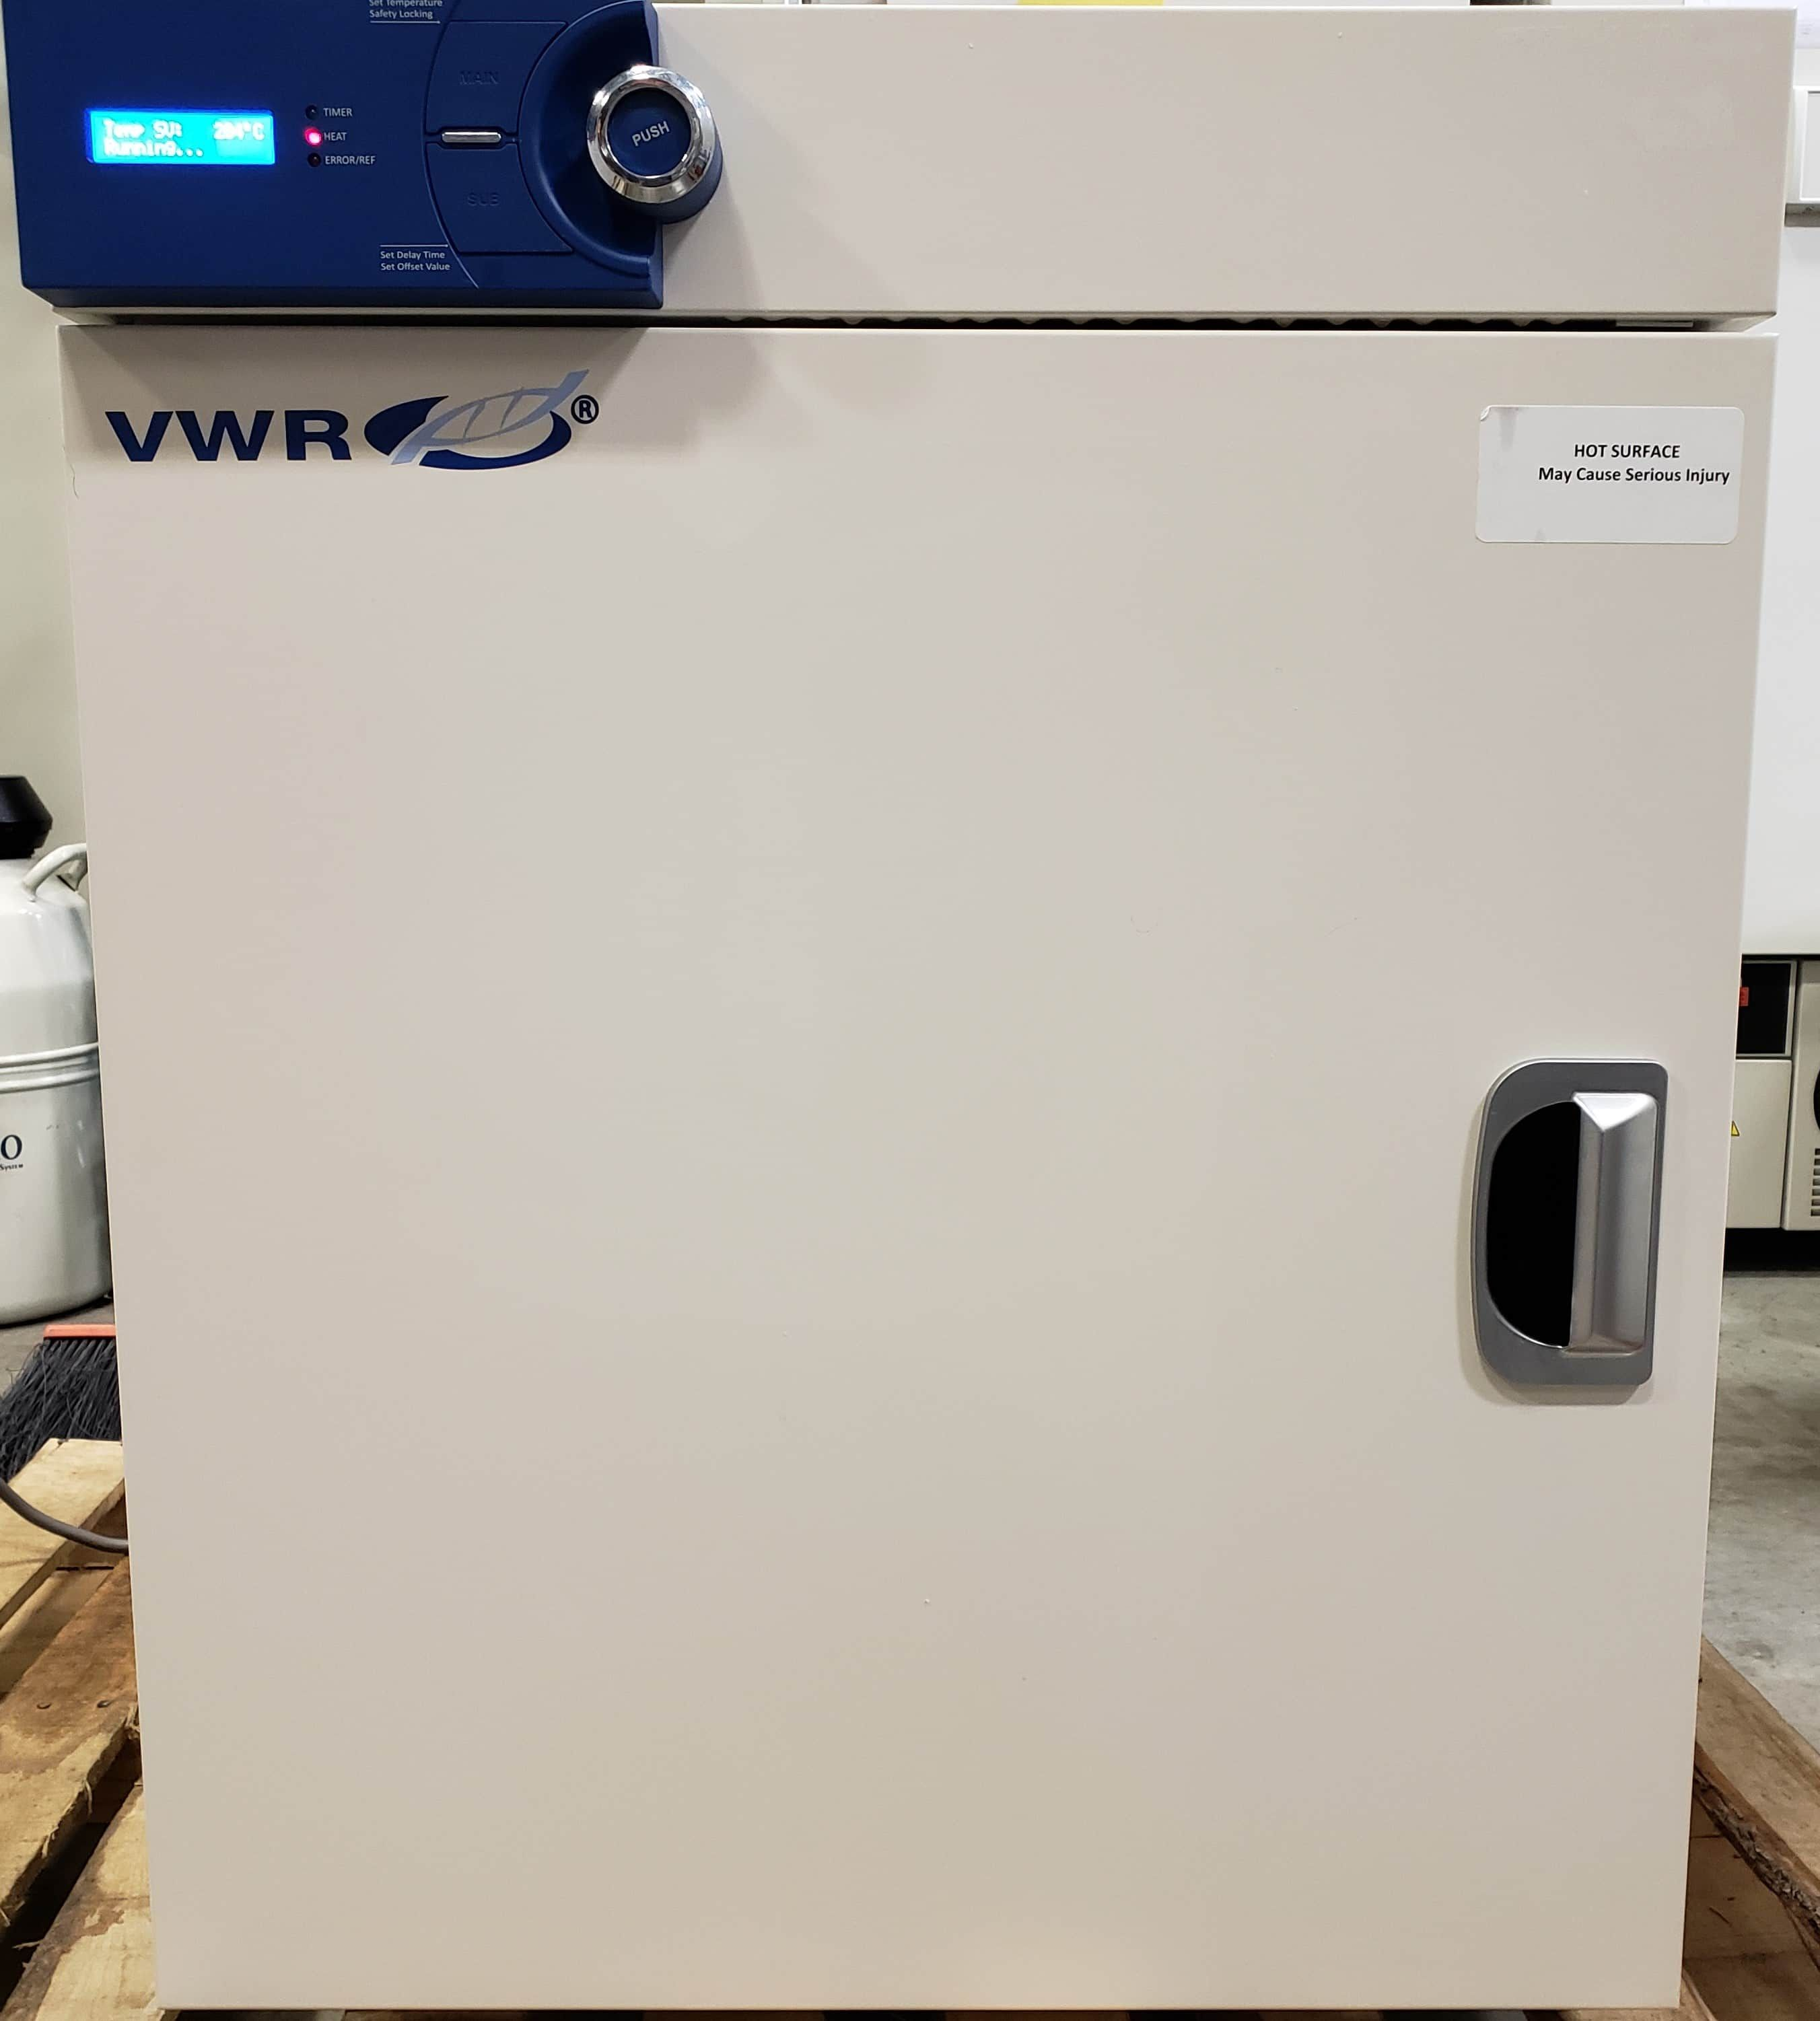 Oven: VWR Horizontal Air Flow Oven - Very good condition